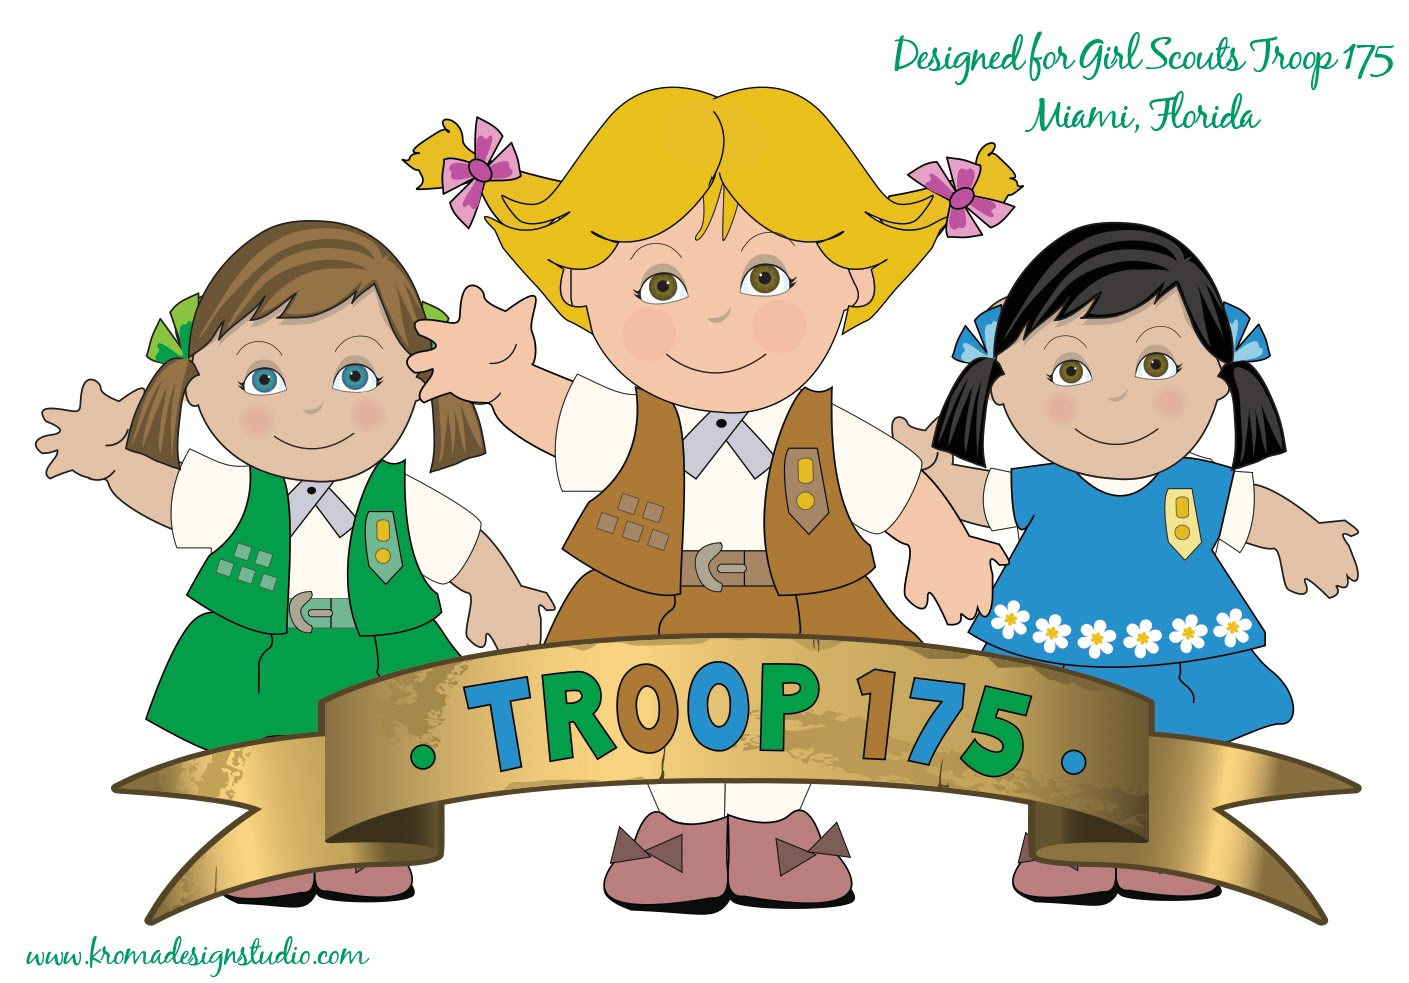 Free Girl Scout Cliparts, Download Free Clip Art, Free Clip Art on.